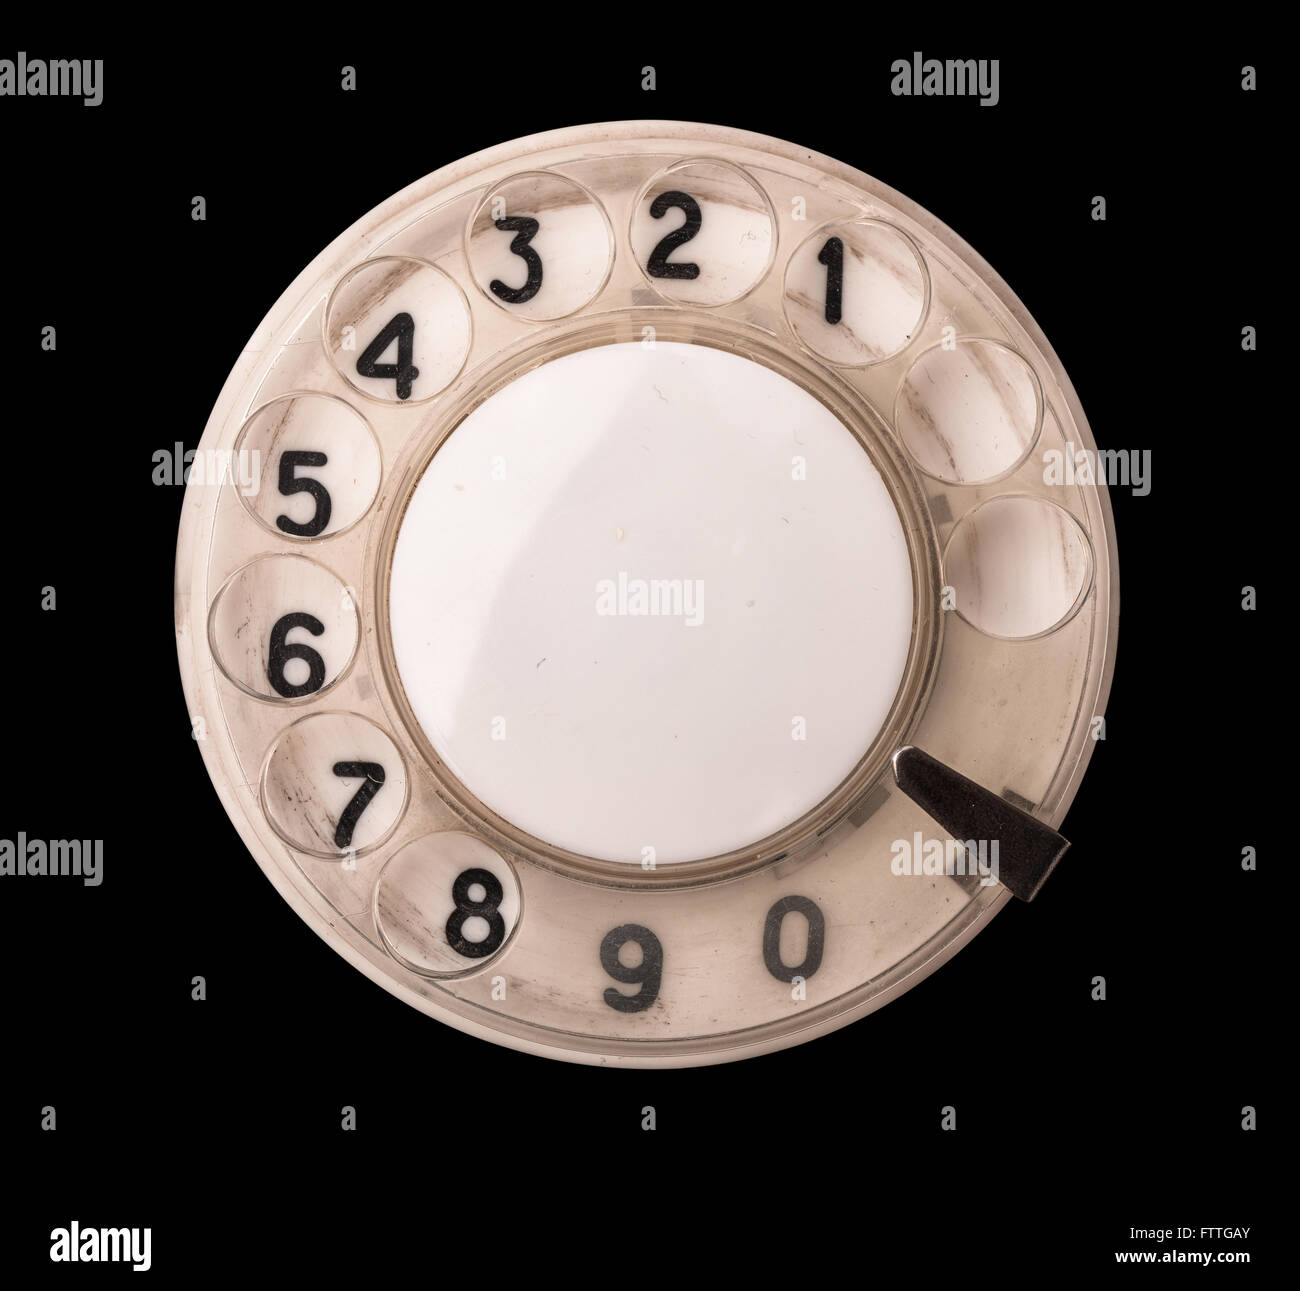 Close up of old rotary phone dial isolated on black - Stock Image